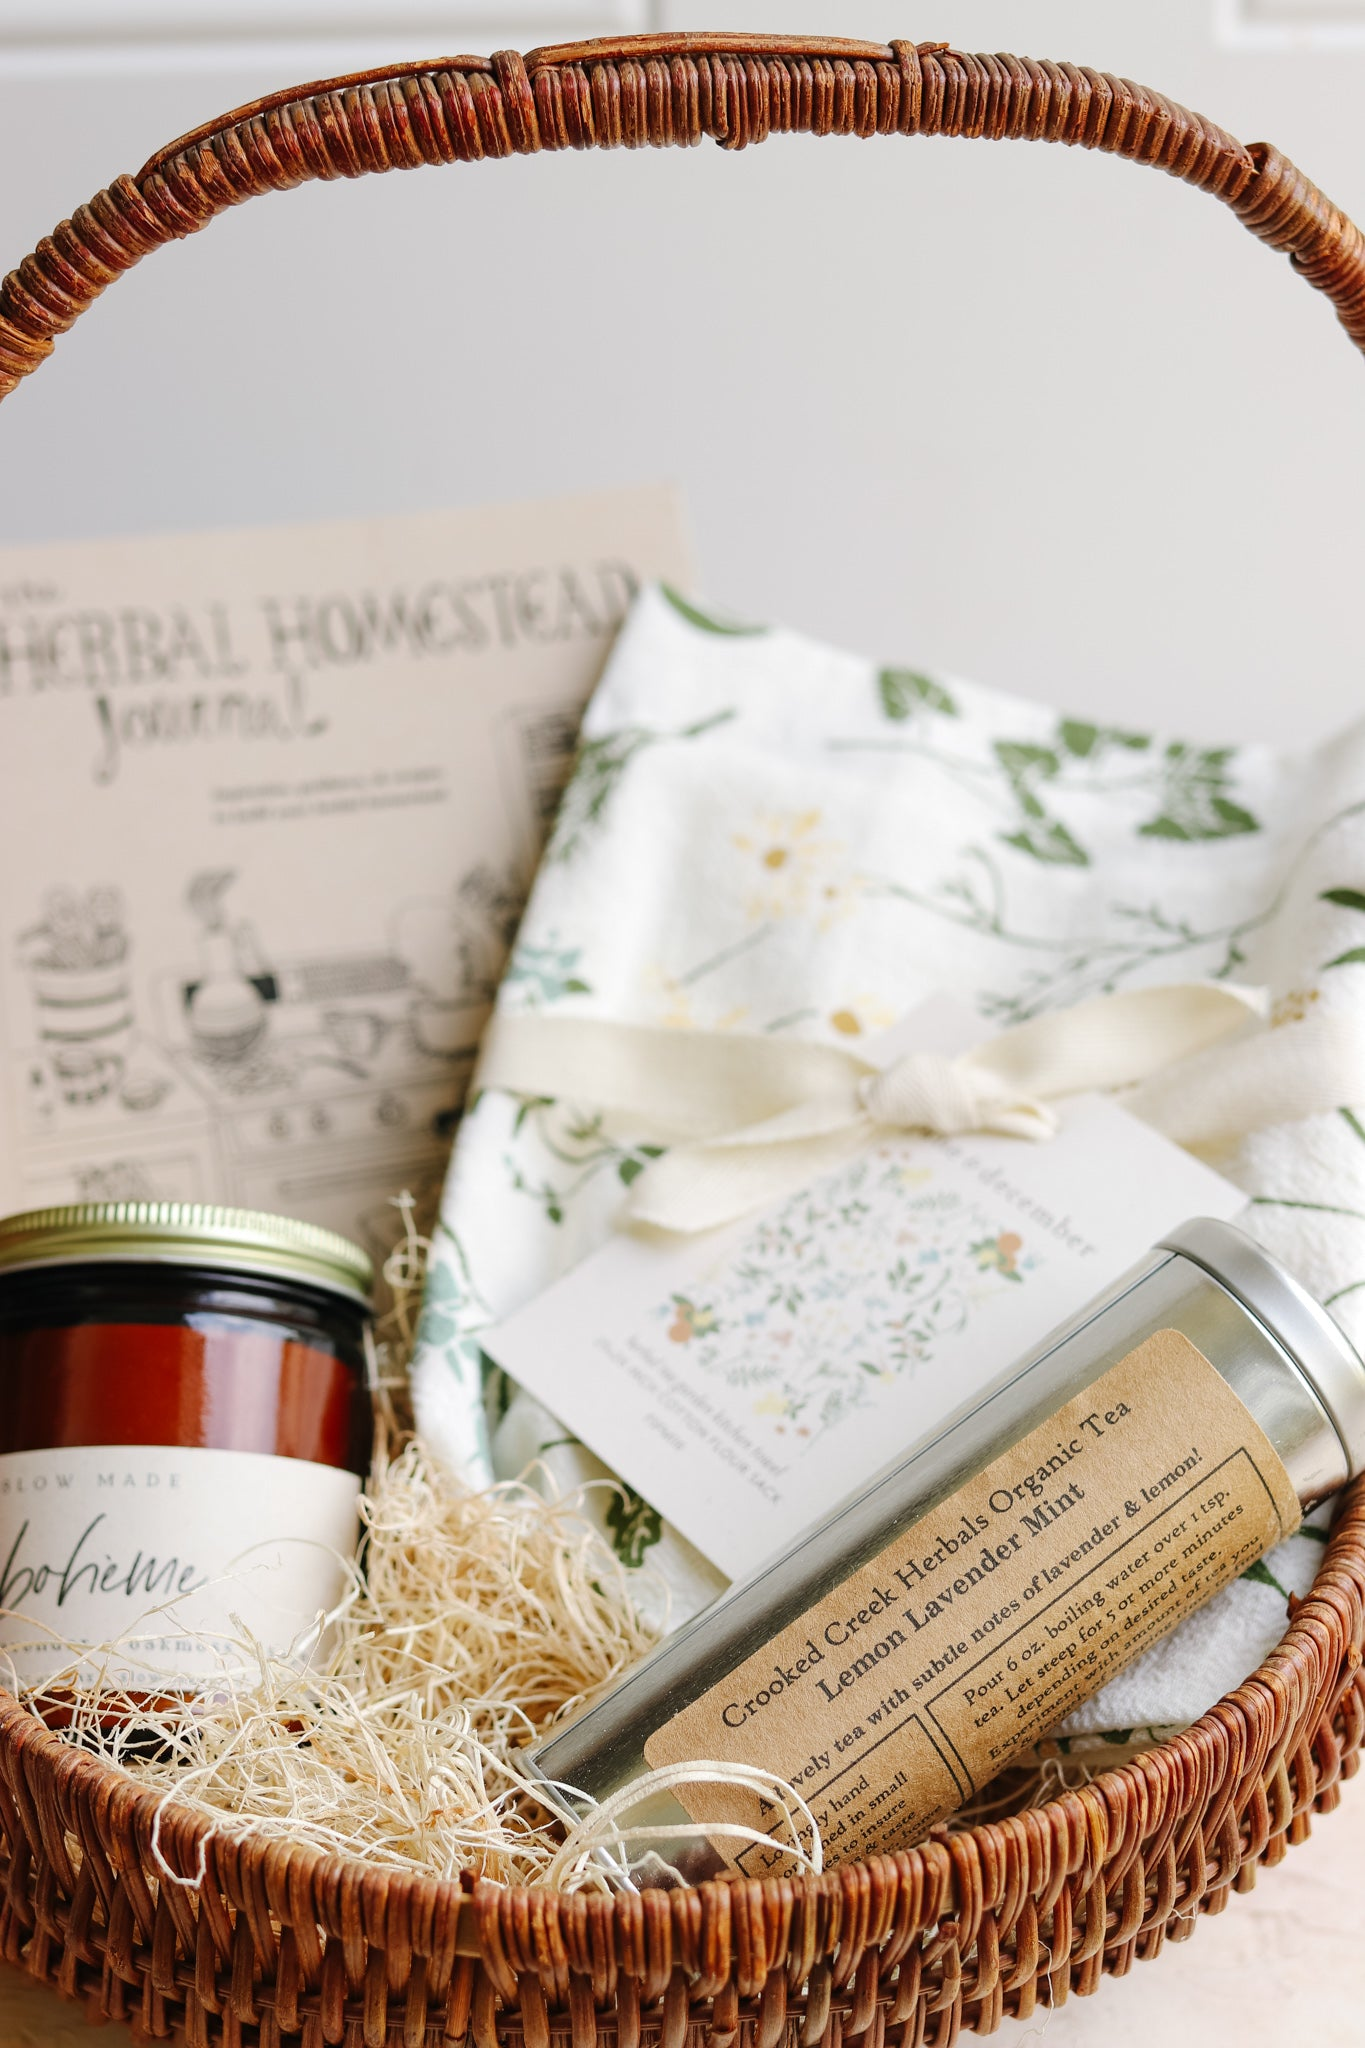 The Herbalist Basket